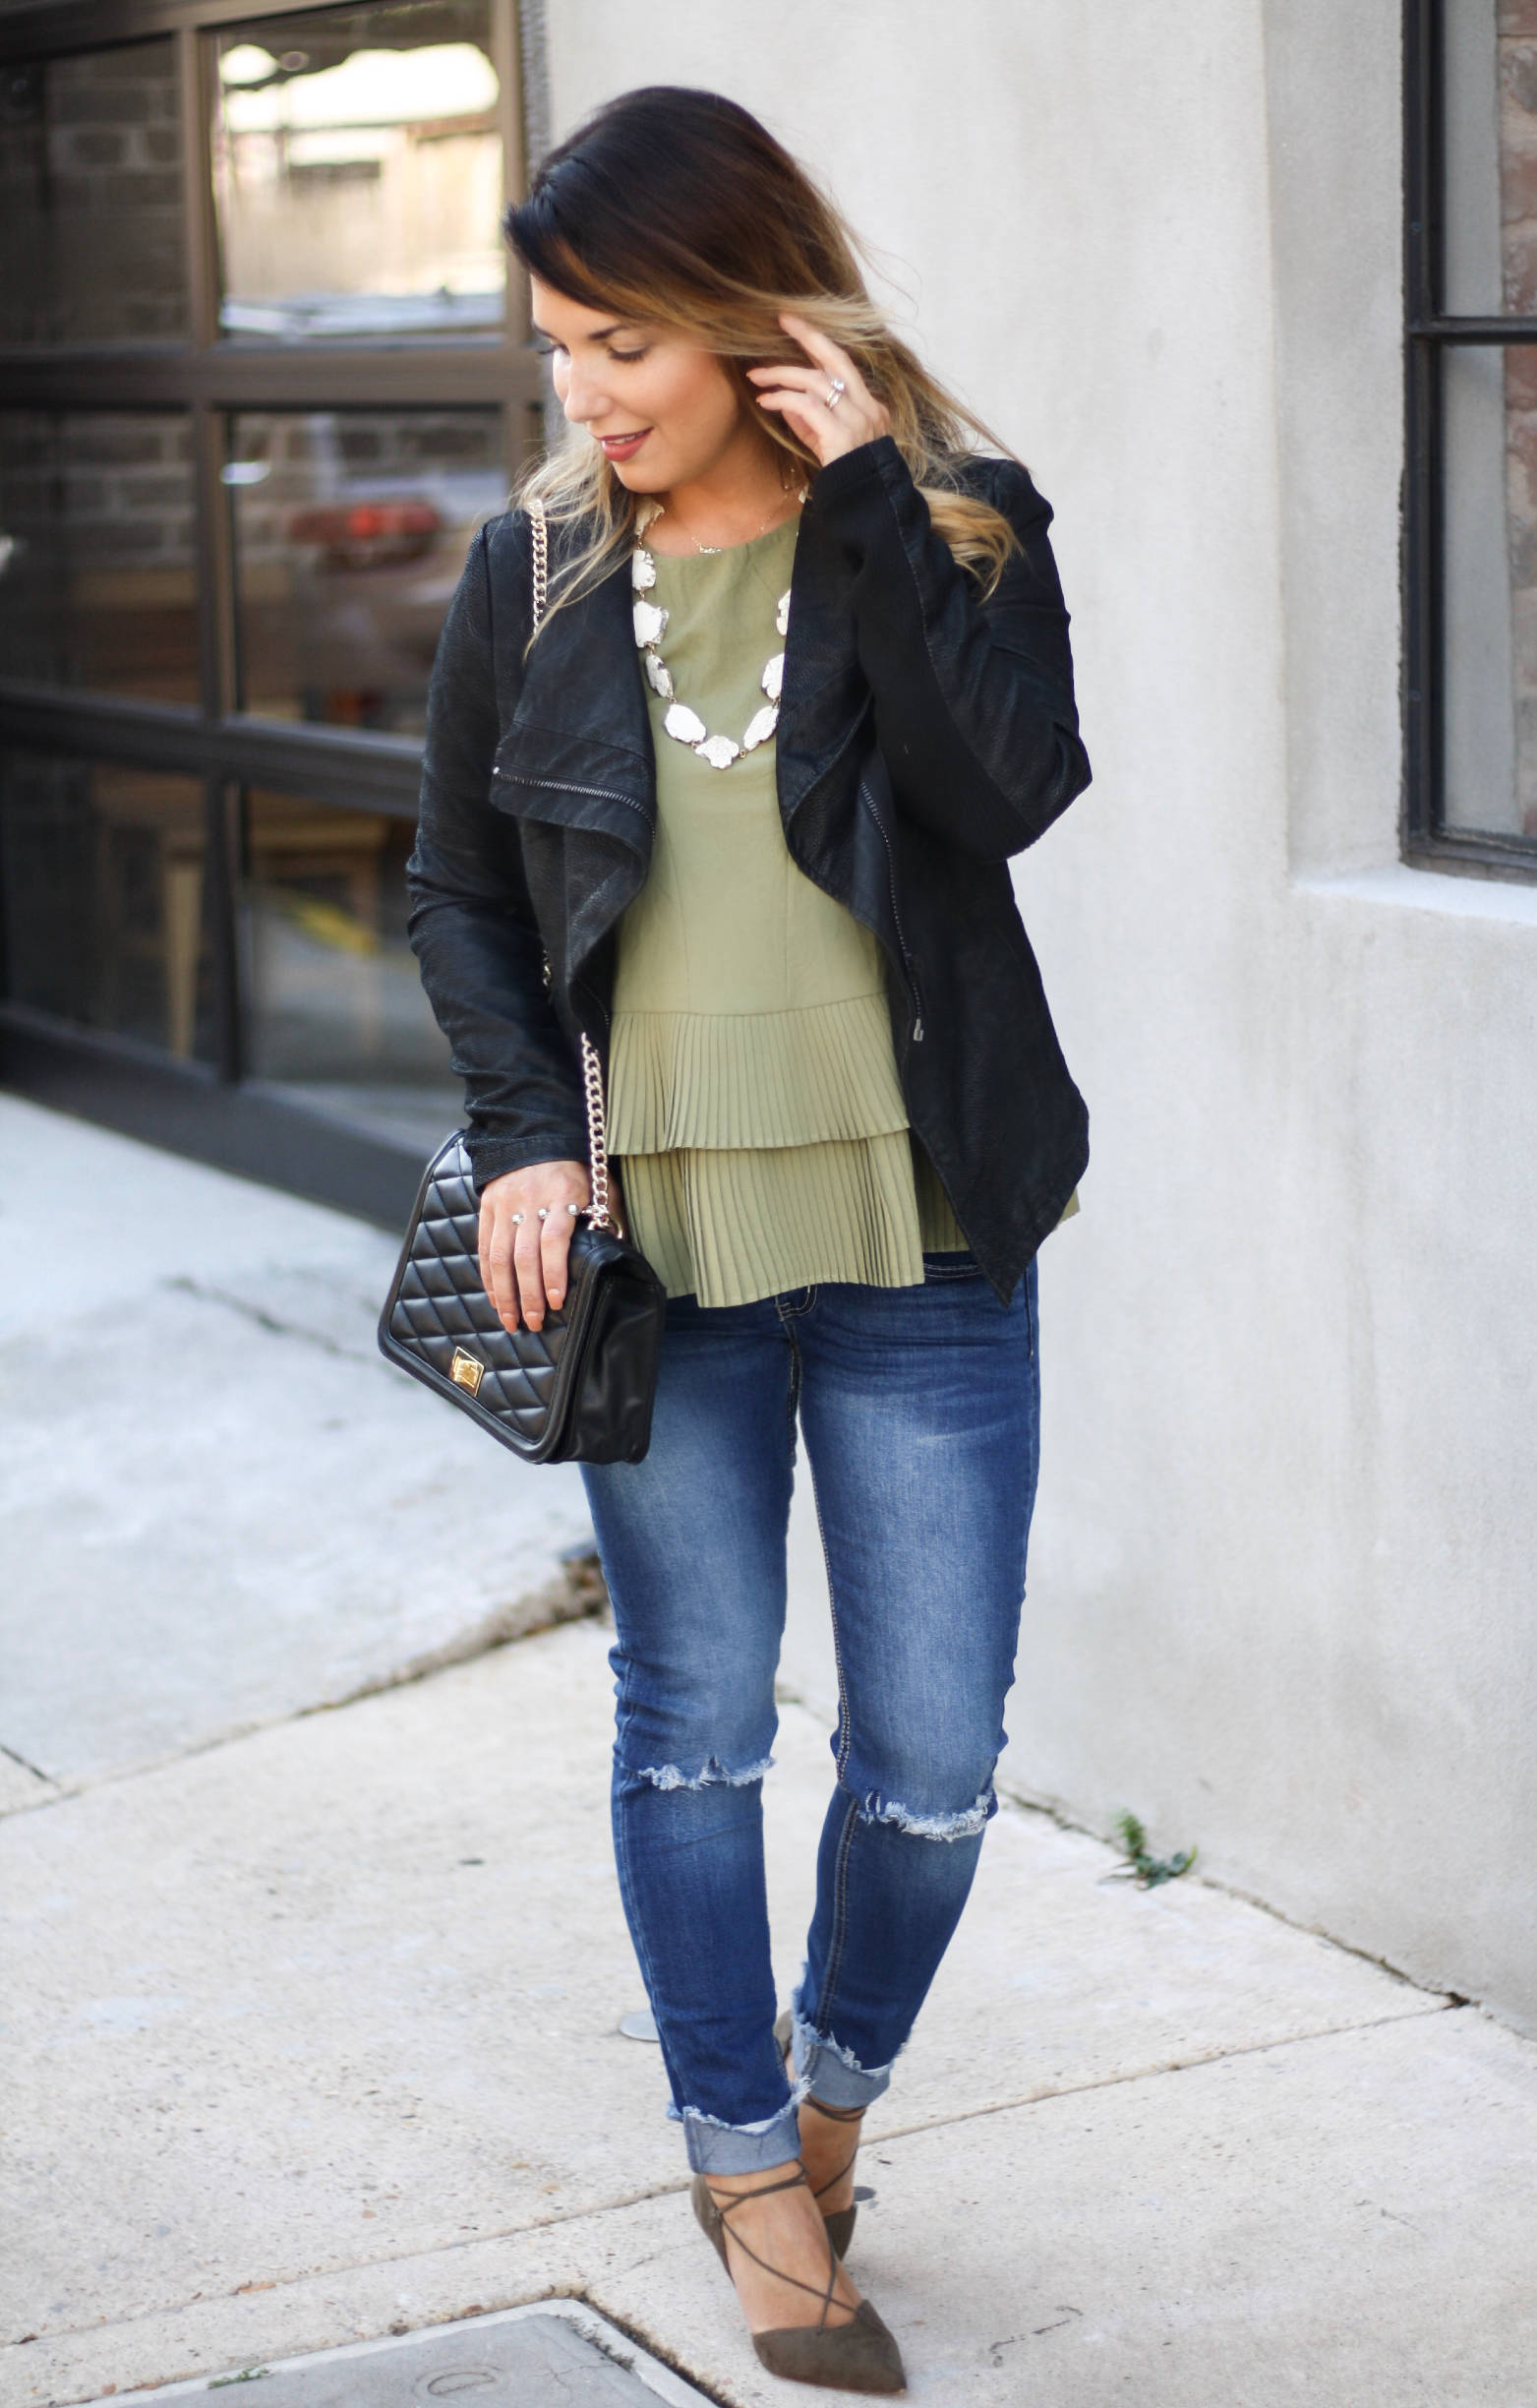 Moto jacket and basic denim